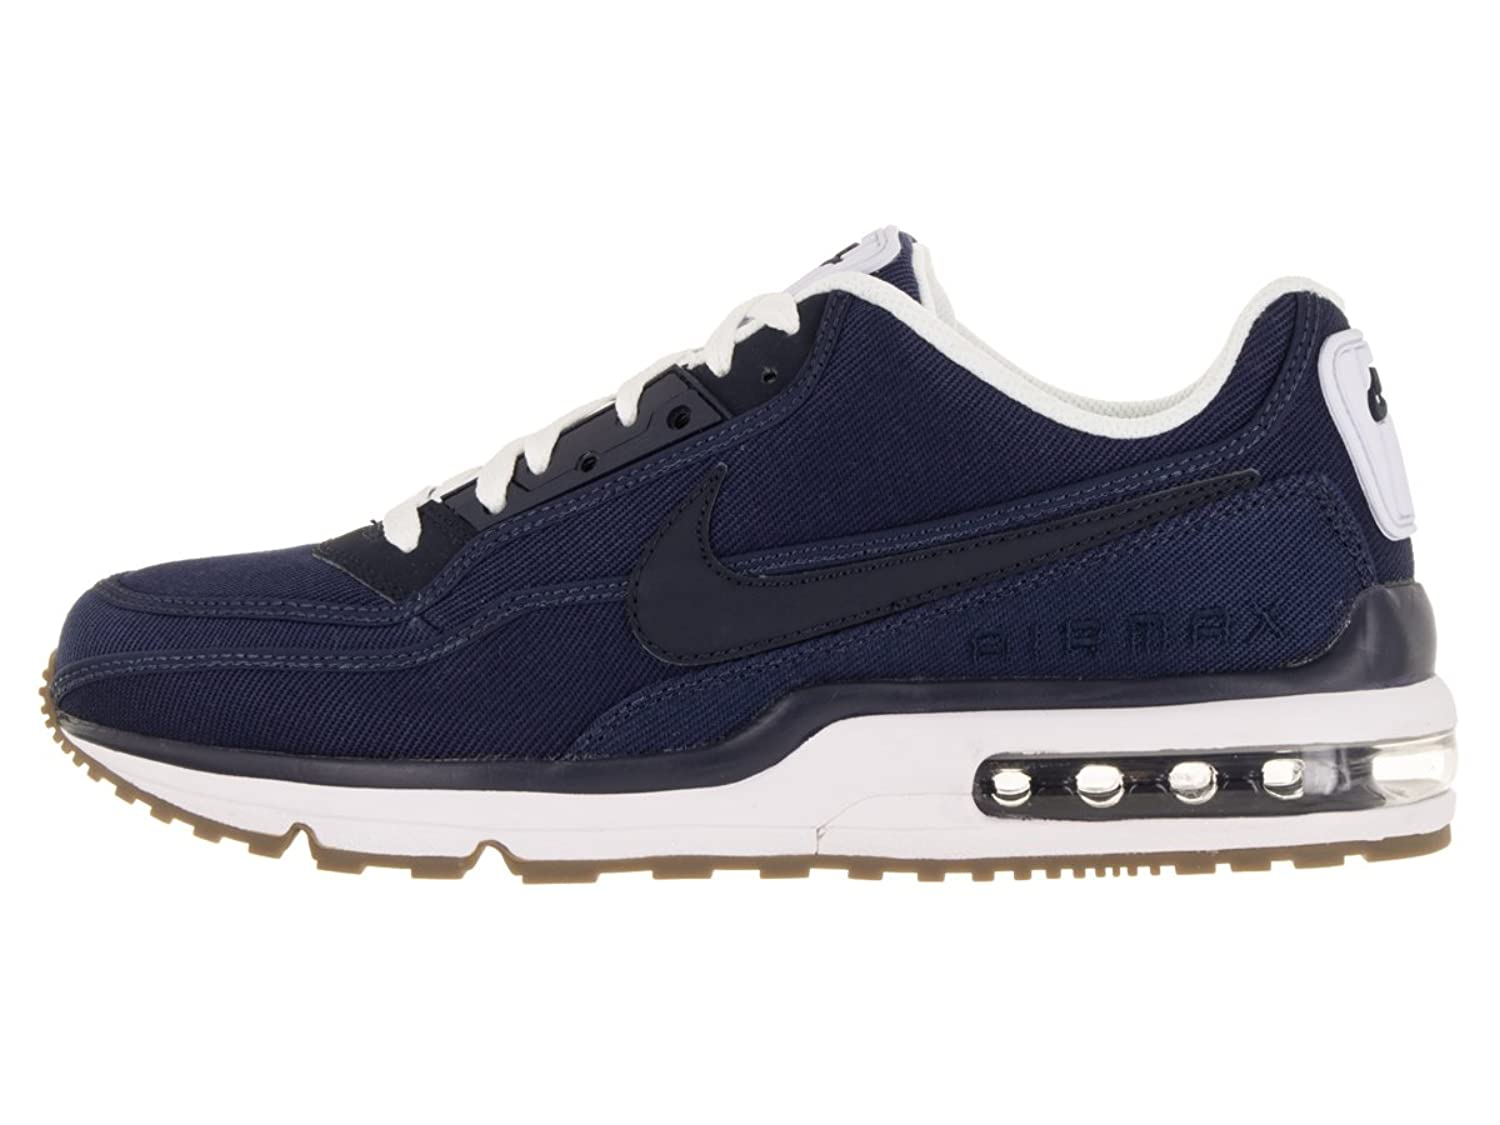 Nike Air Max Ltd 3 Txt Gjennomgang Av Optometri sQ2DumPyF